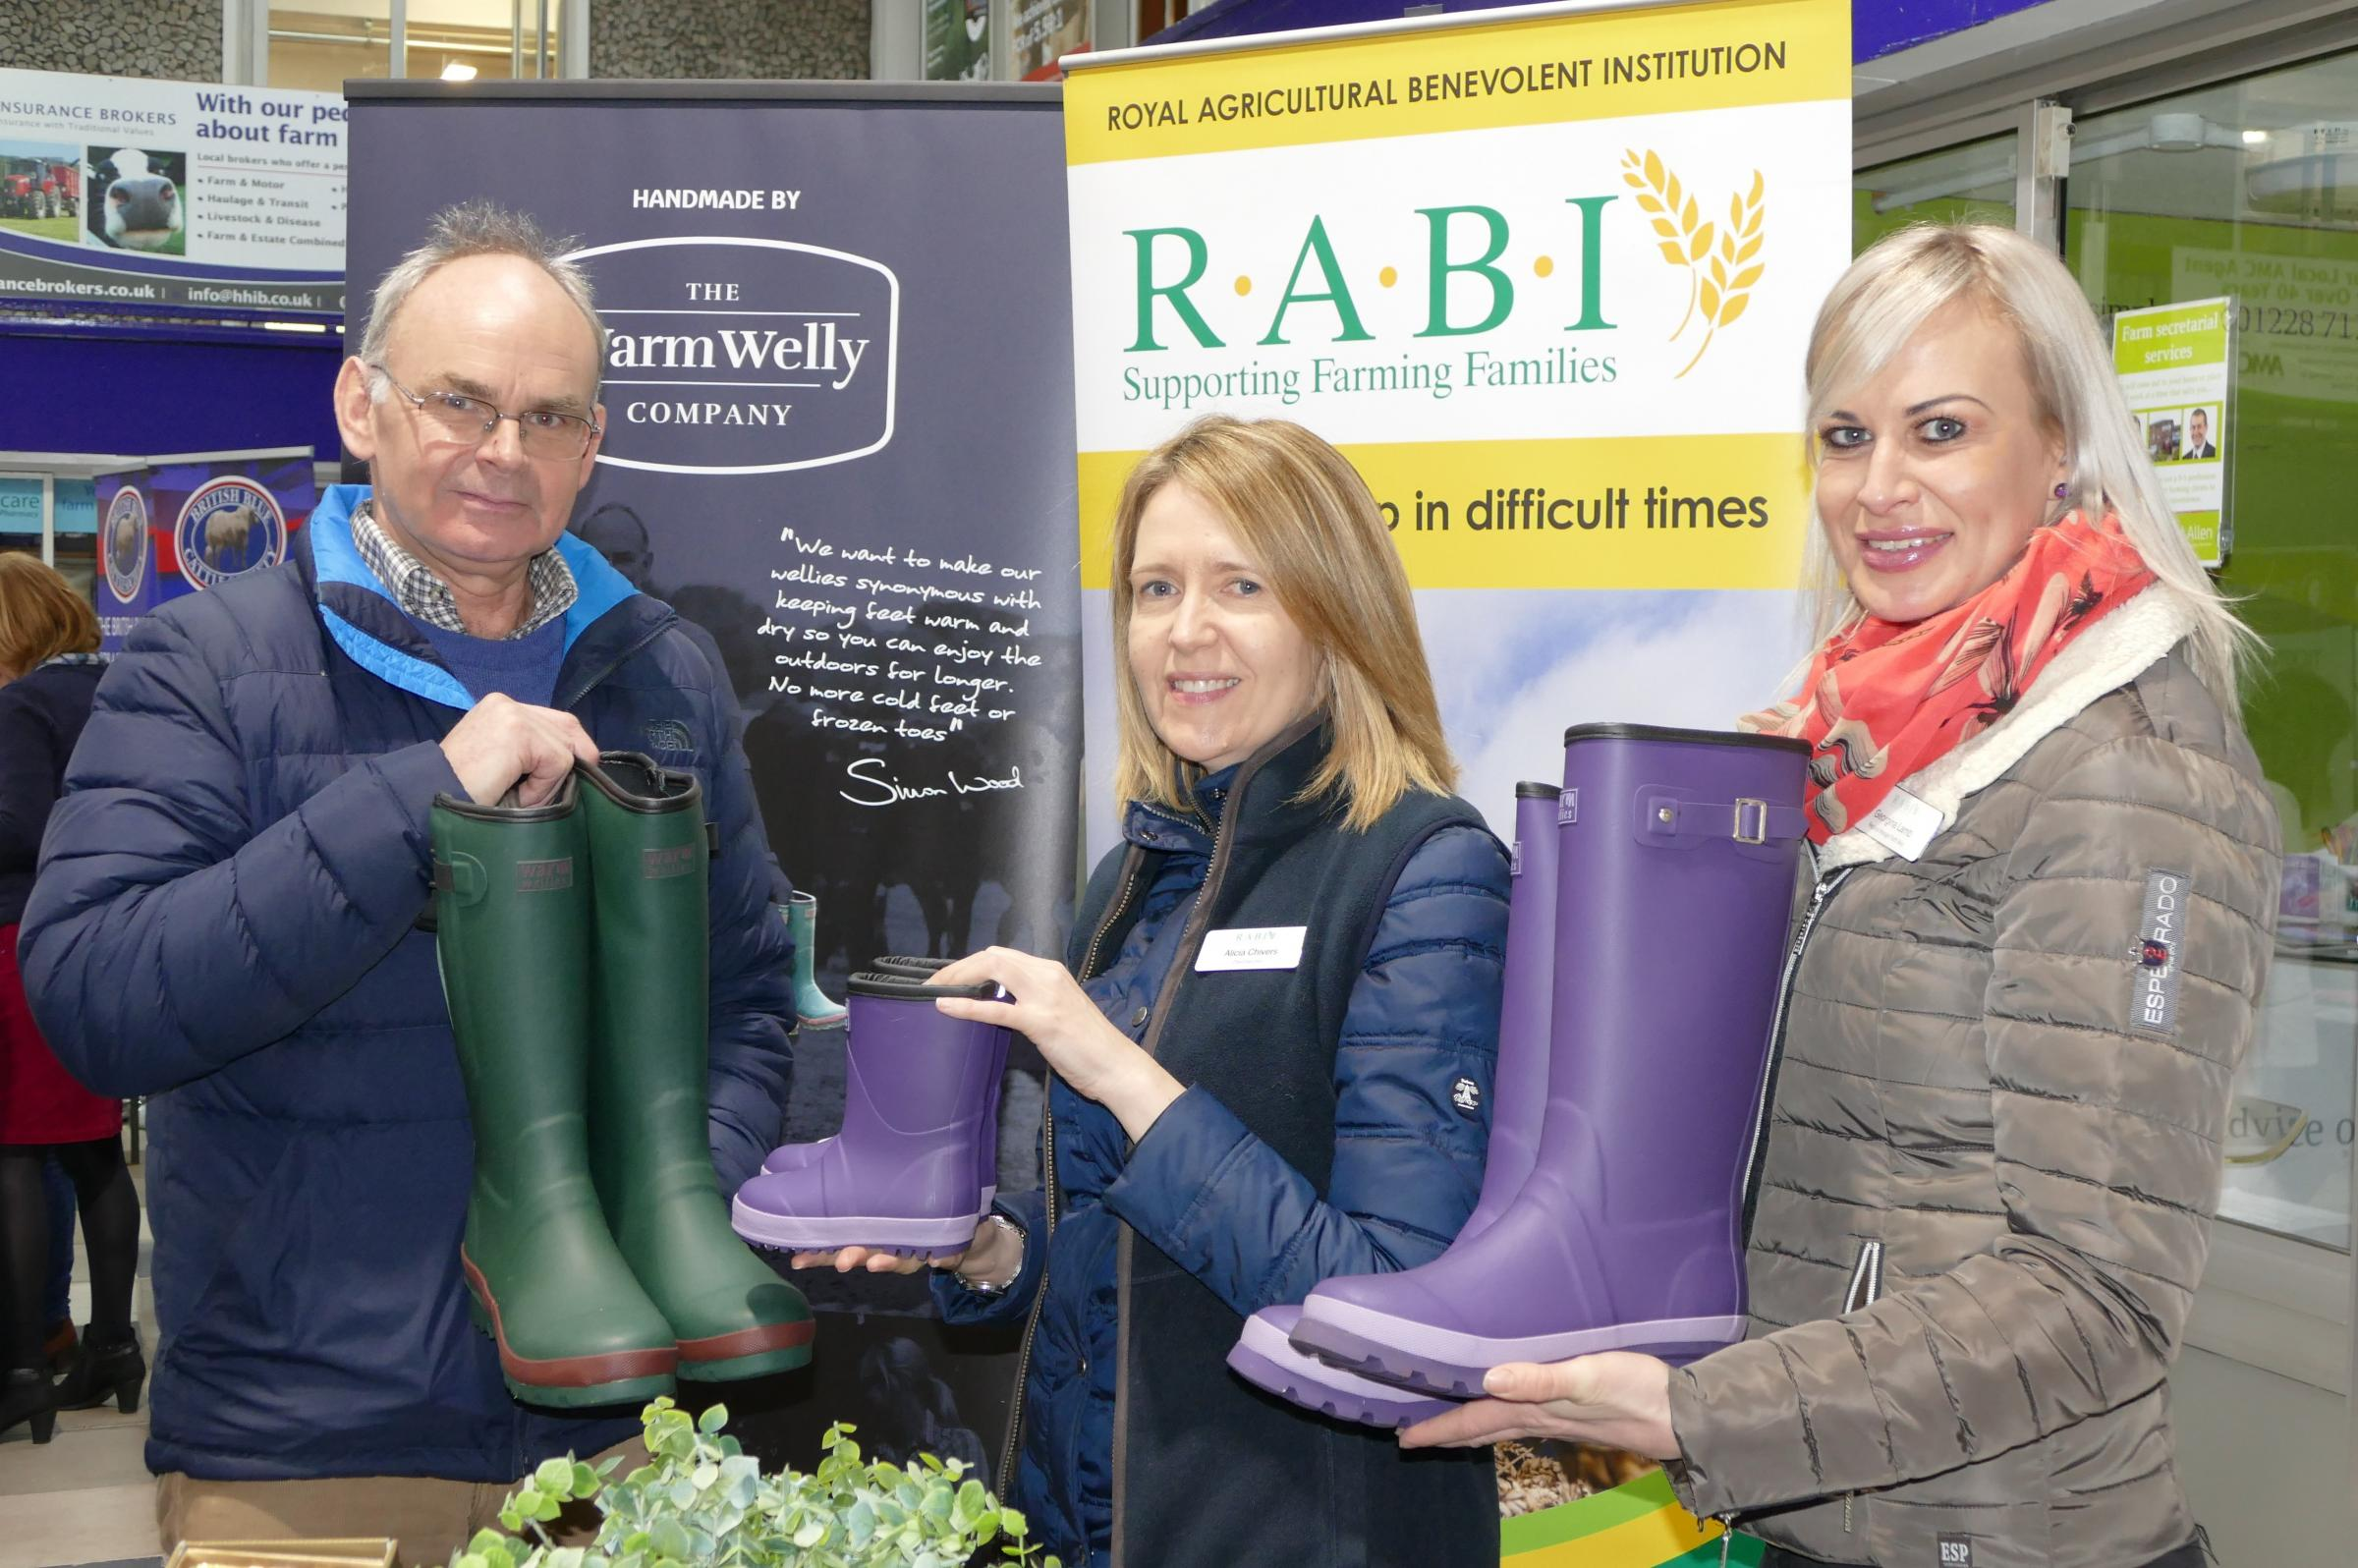 Simon Wood with RABI CEO Alicia Chivers and NW regional manager Georgina Lamb.